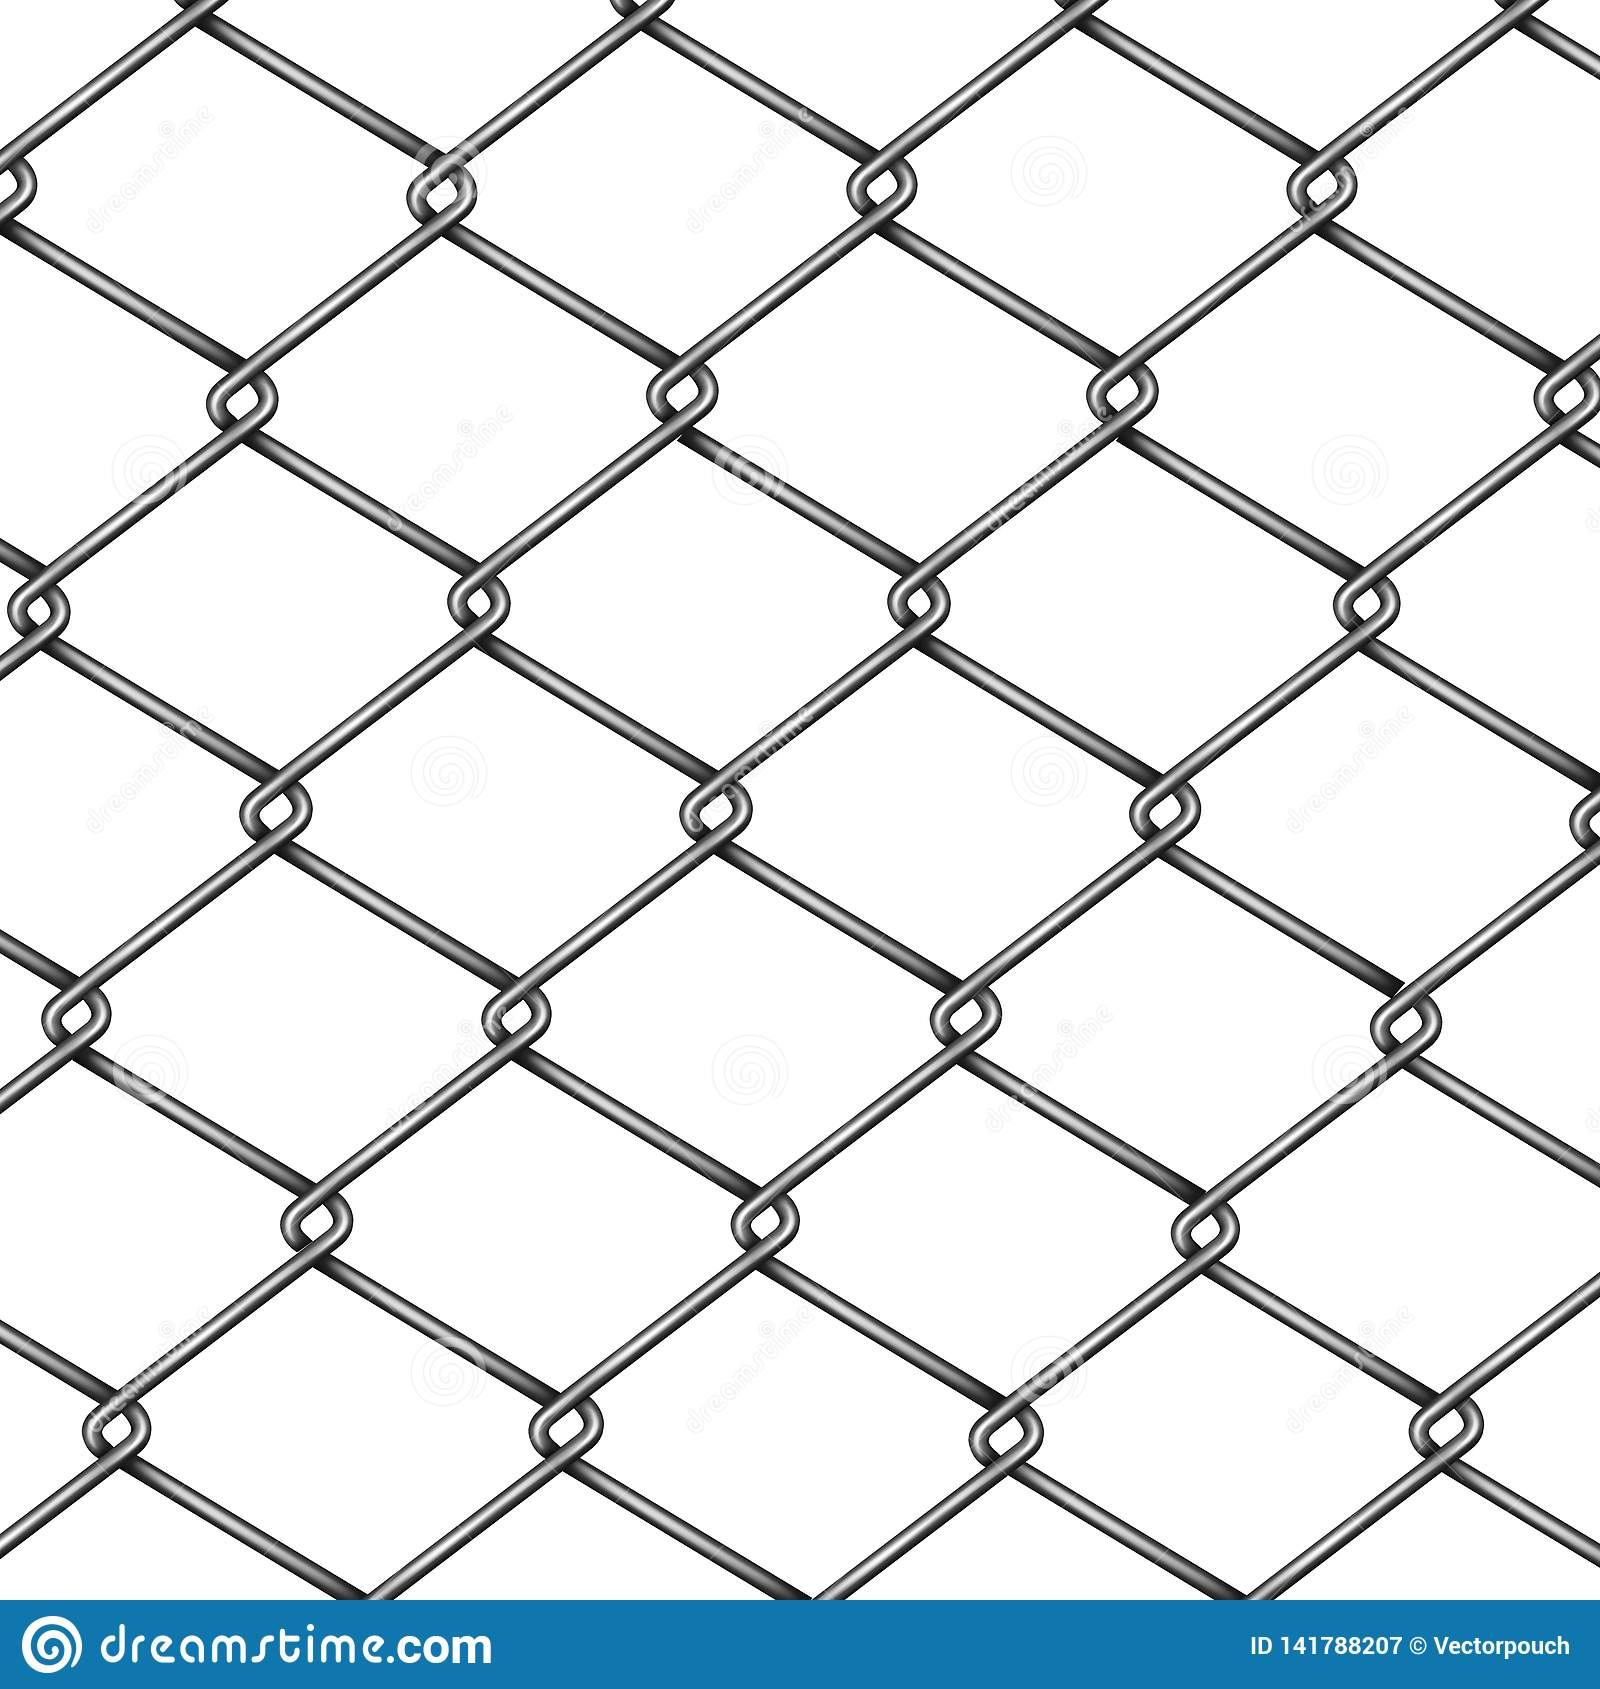 Chain-link fence pattern 3d realistic vector